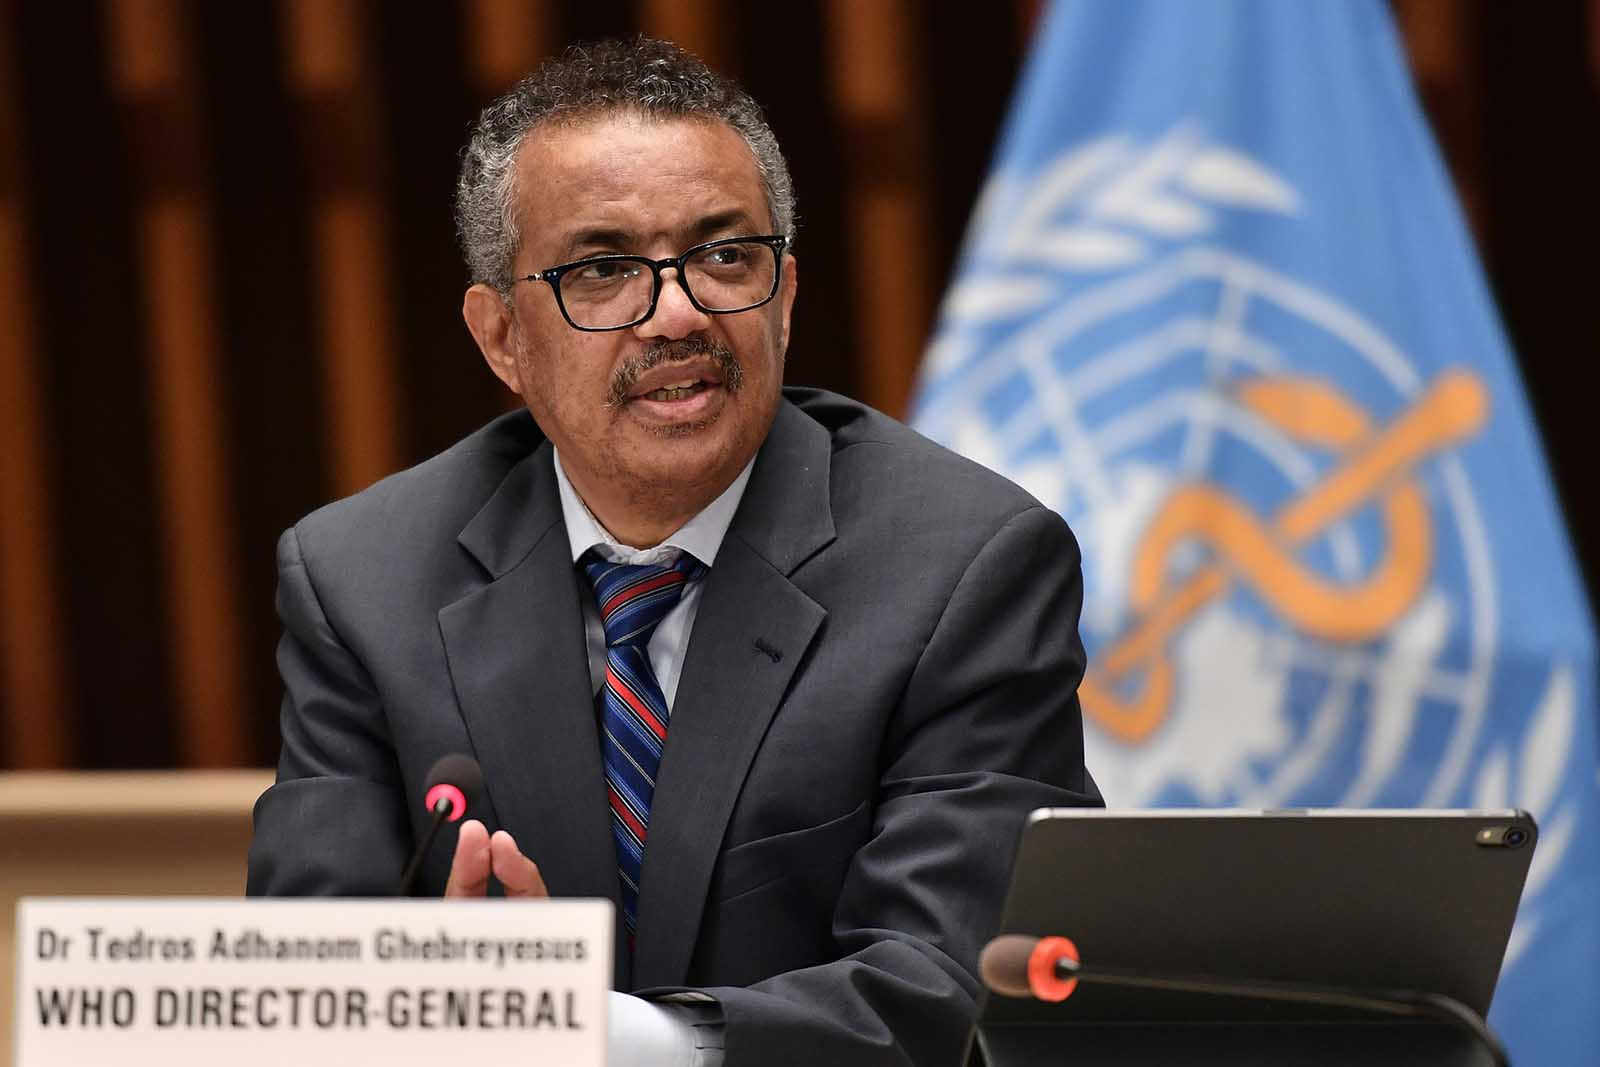 World Health Organization Director-General Tedros Adhanom Ghebreyesus attends a press conference organised by the Geneva Association of United Nations Correspondents amid the Covid-19 outbreak on July 3, in Geneva.